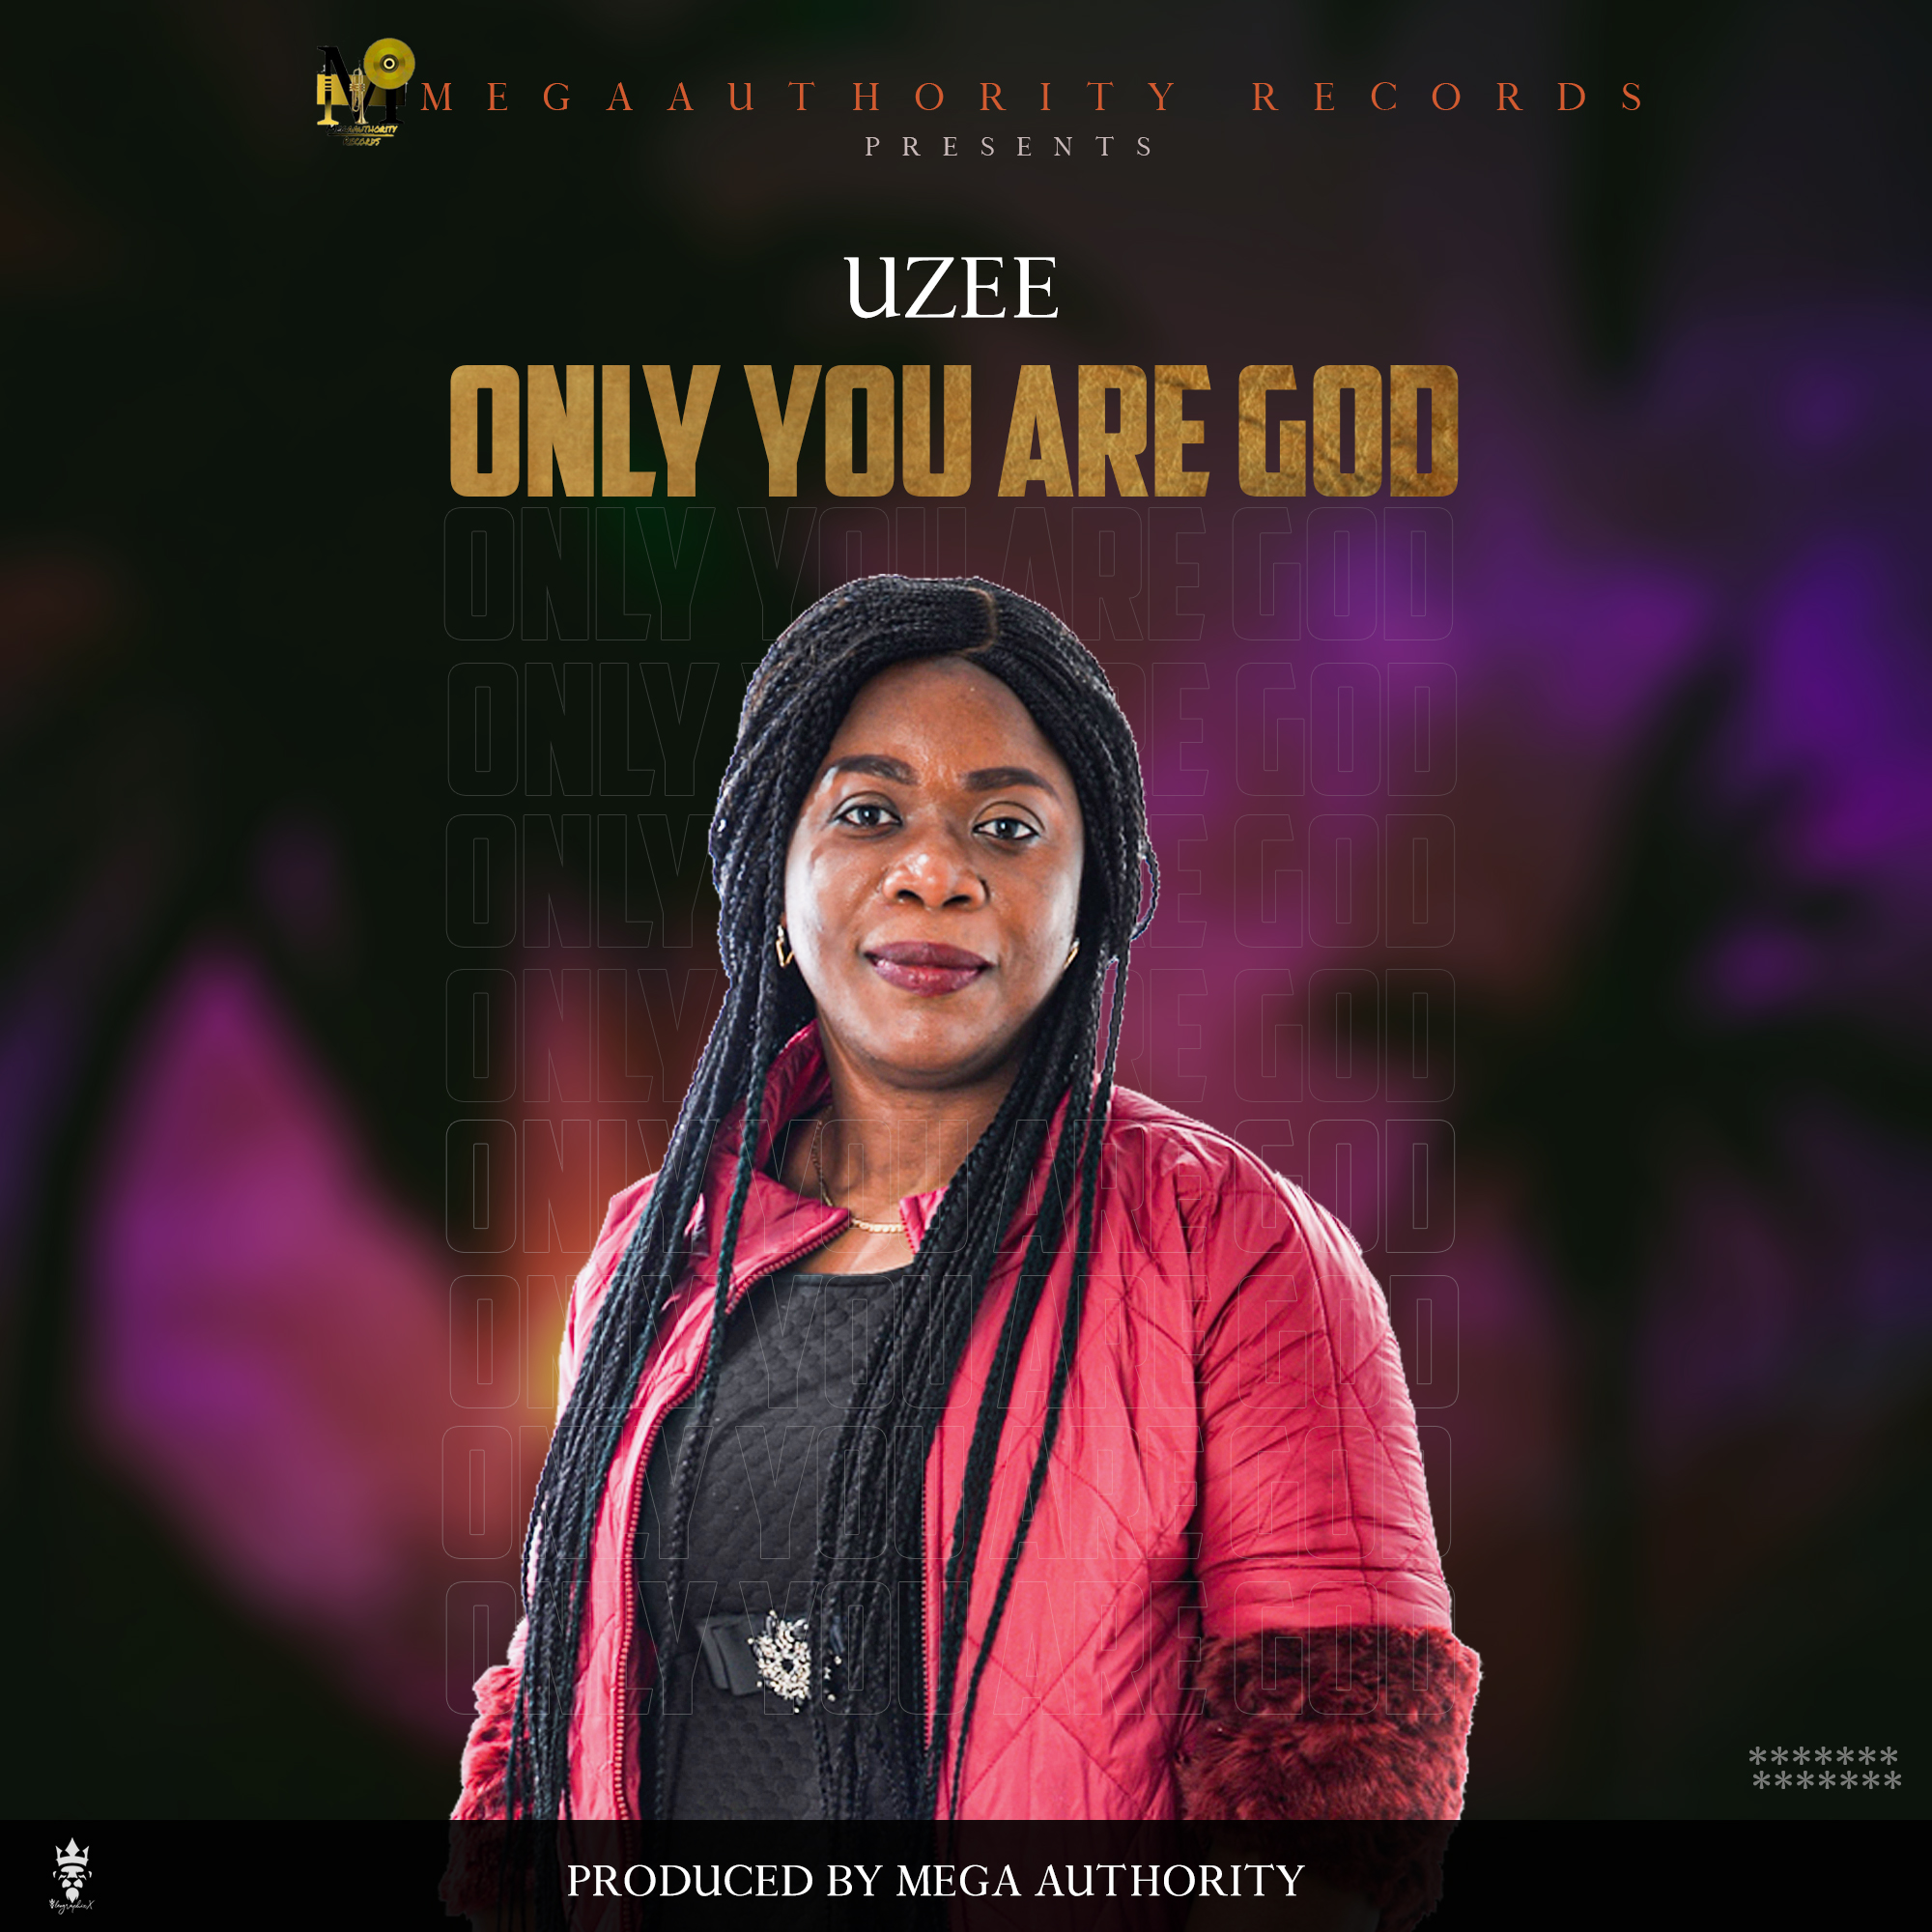 UZEE ONLY YOU ARE GOD